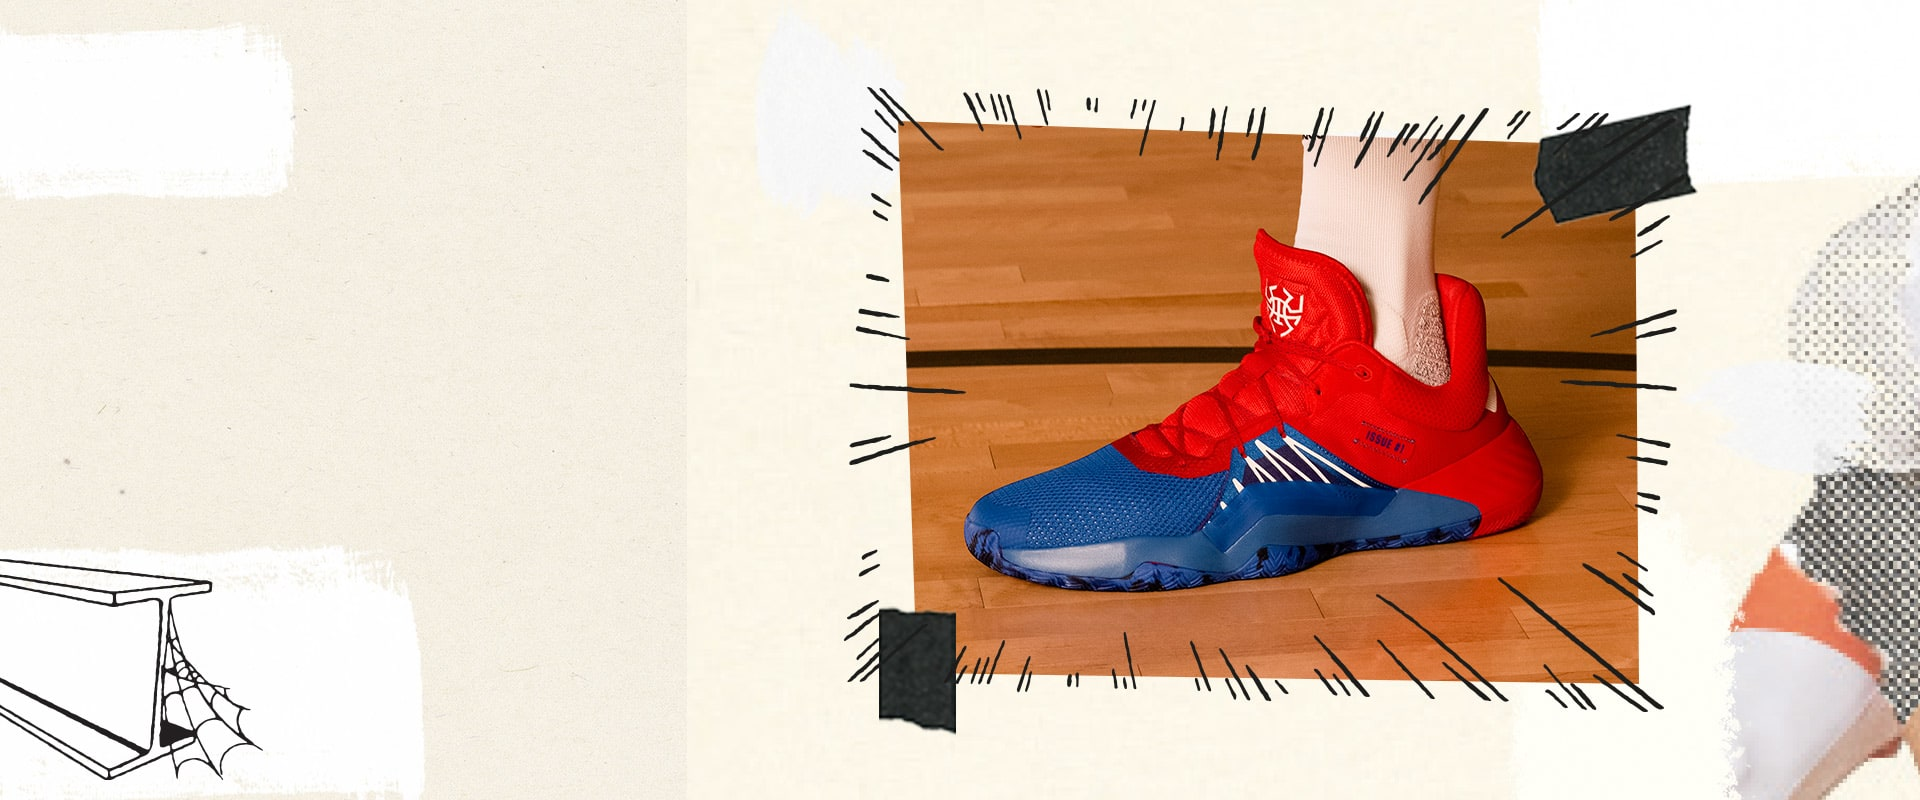 Basketball Shoes, Clothing & Accessories | adidas Basketball